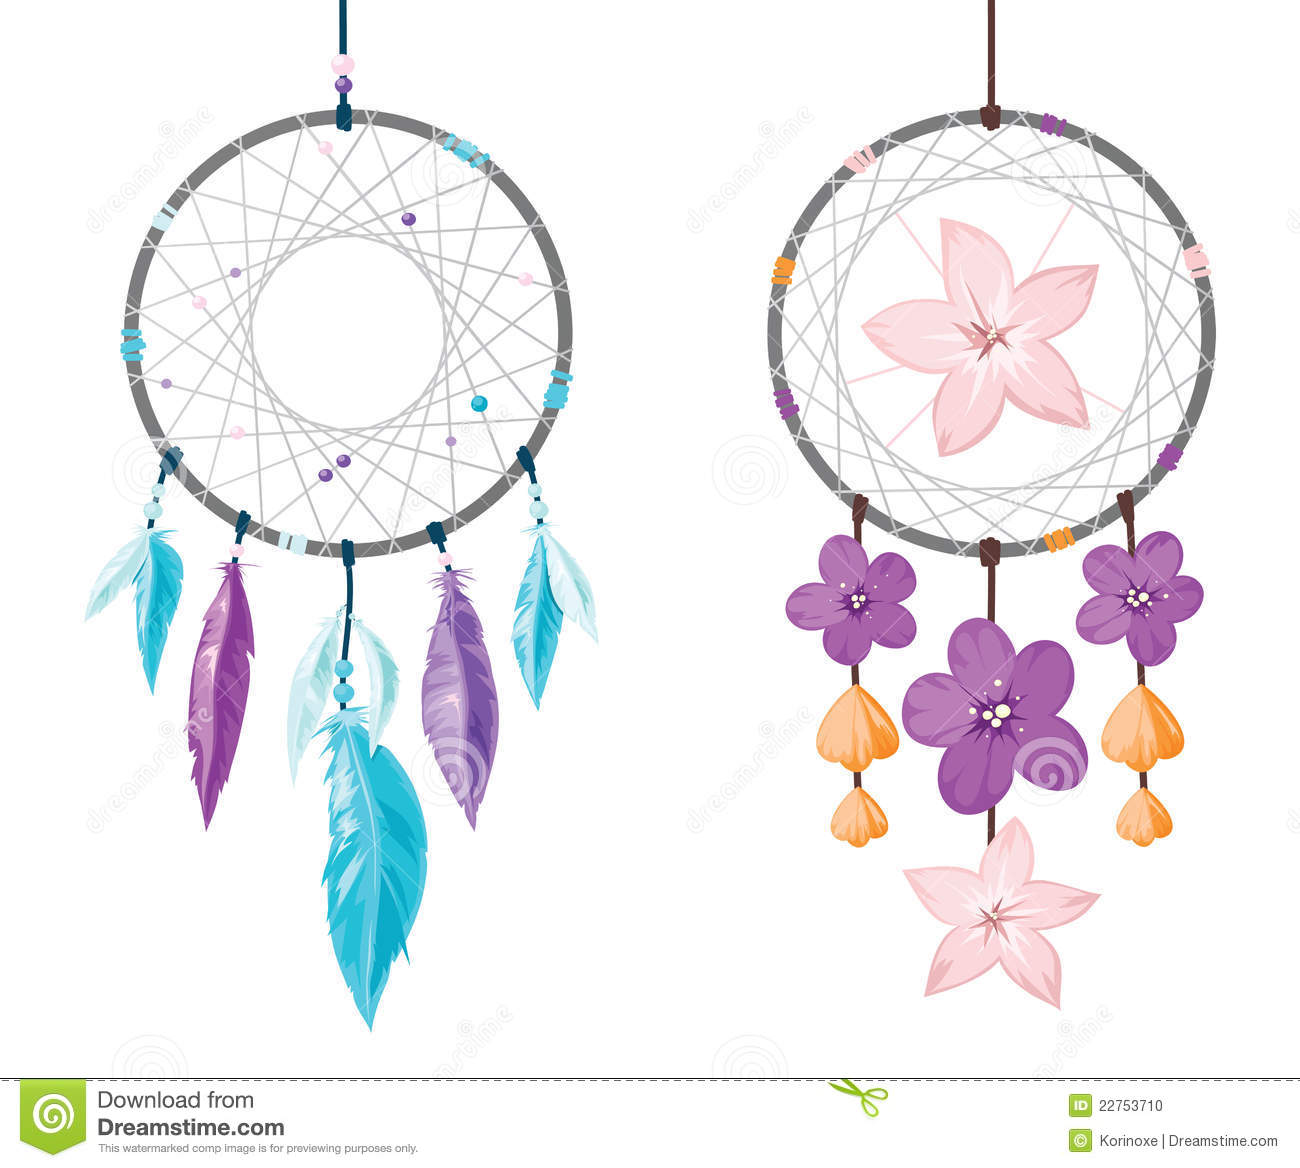 Free dream catcher clipart 7 » Clipart Station.